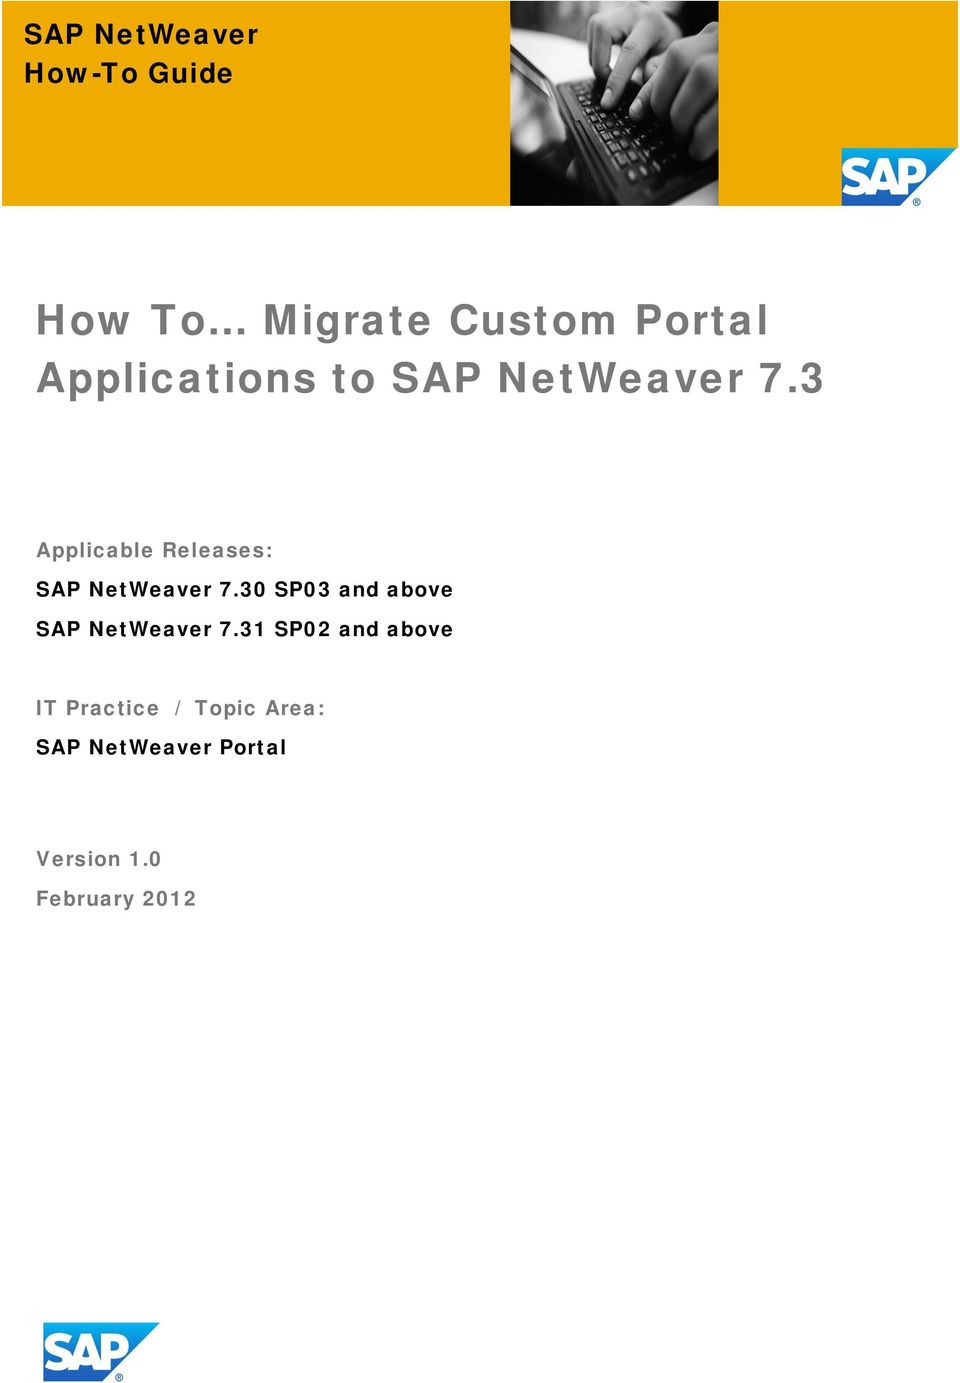 3 Applicable Releases: SAP NetWeaver 7.